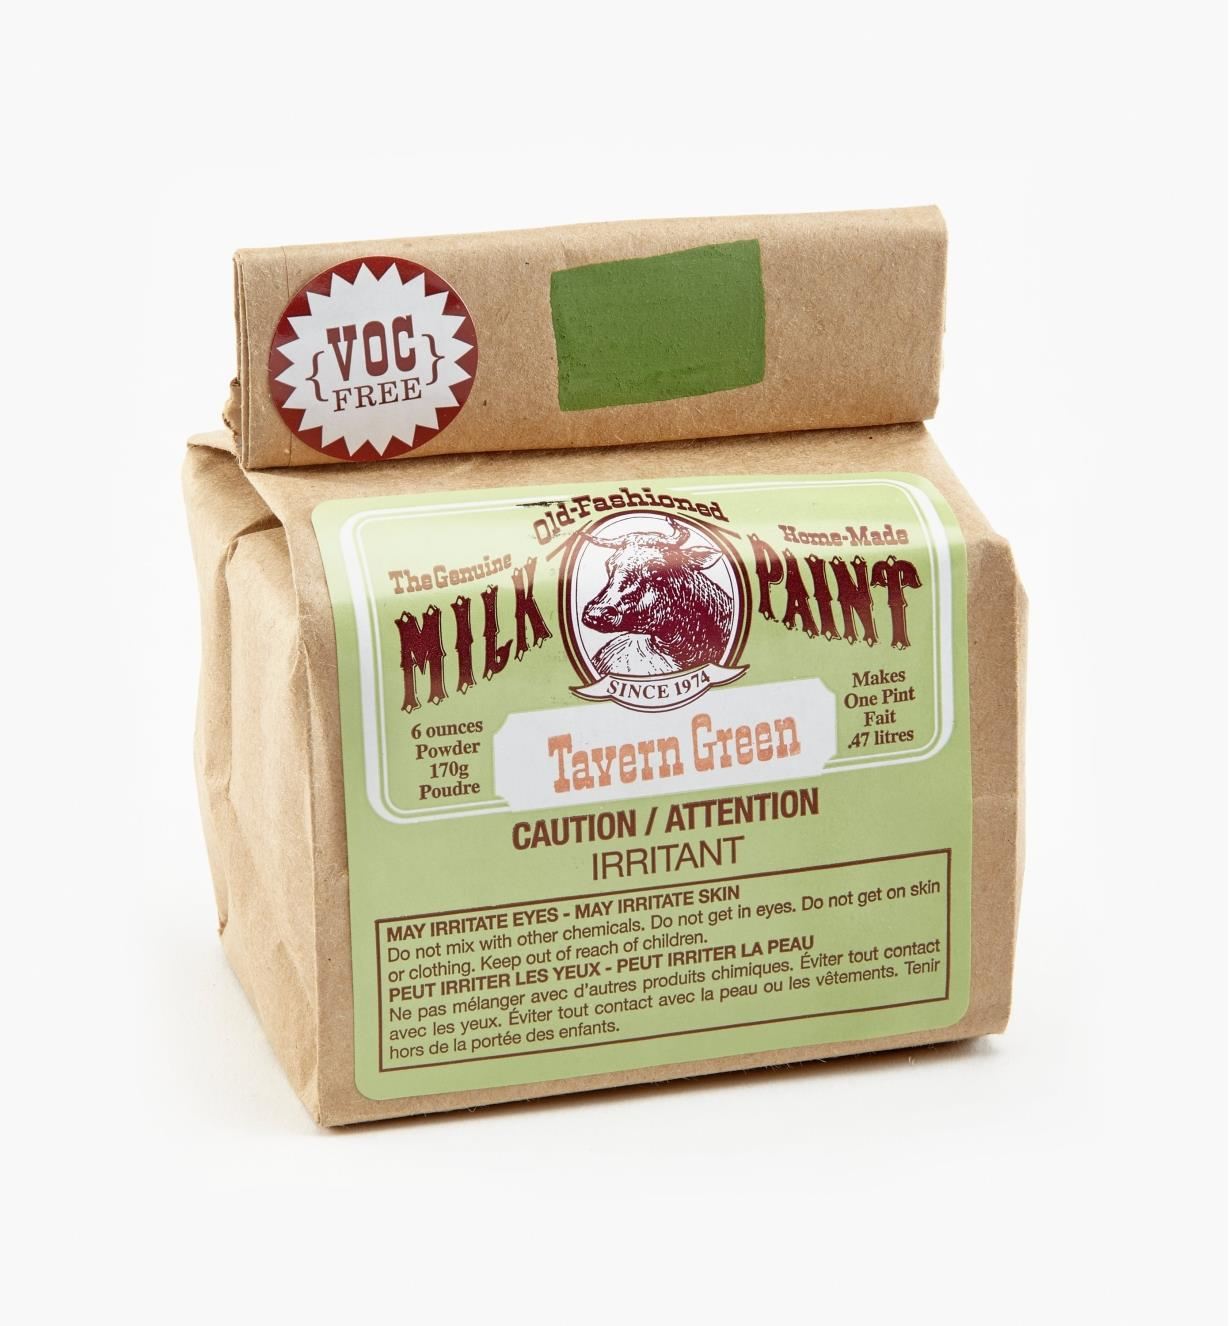 53Z5014 - Milk Paint, Tavern Green